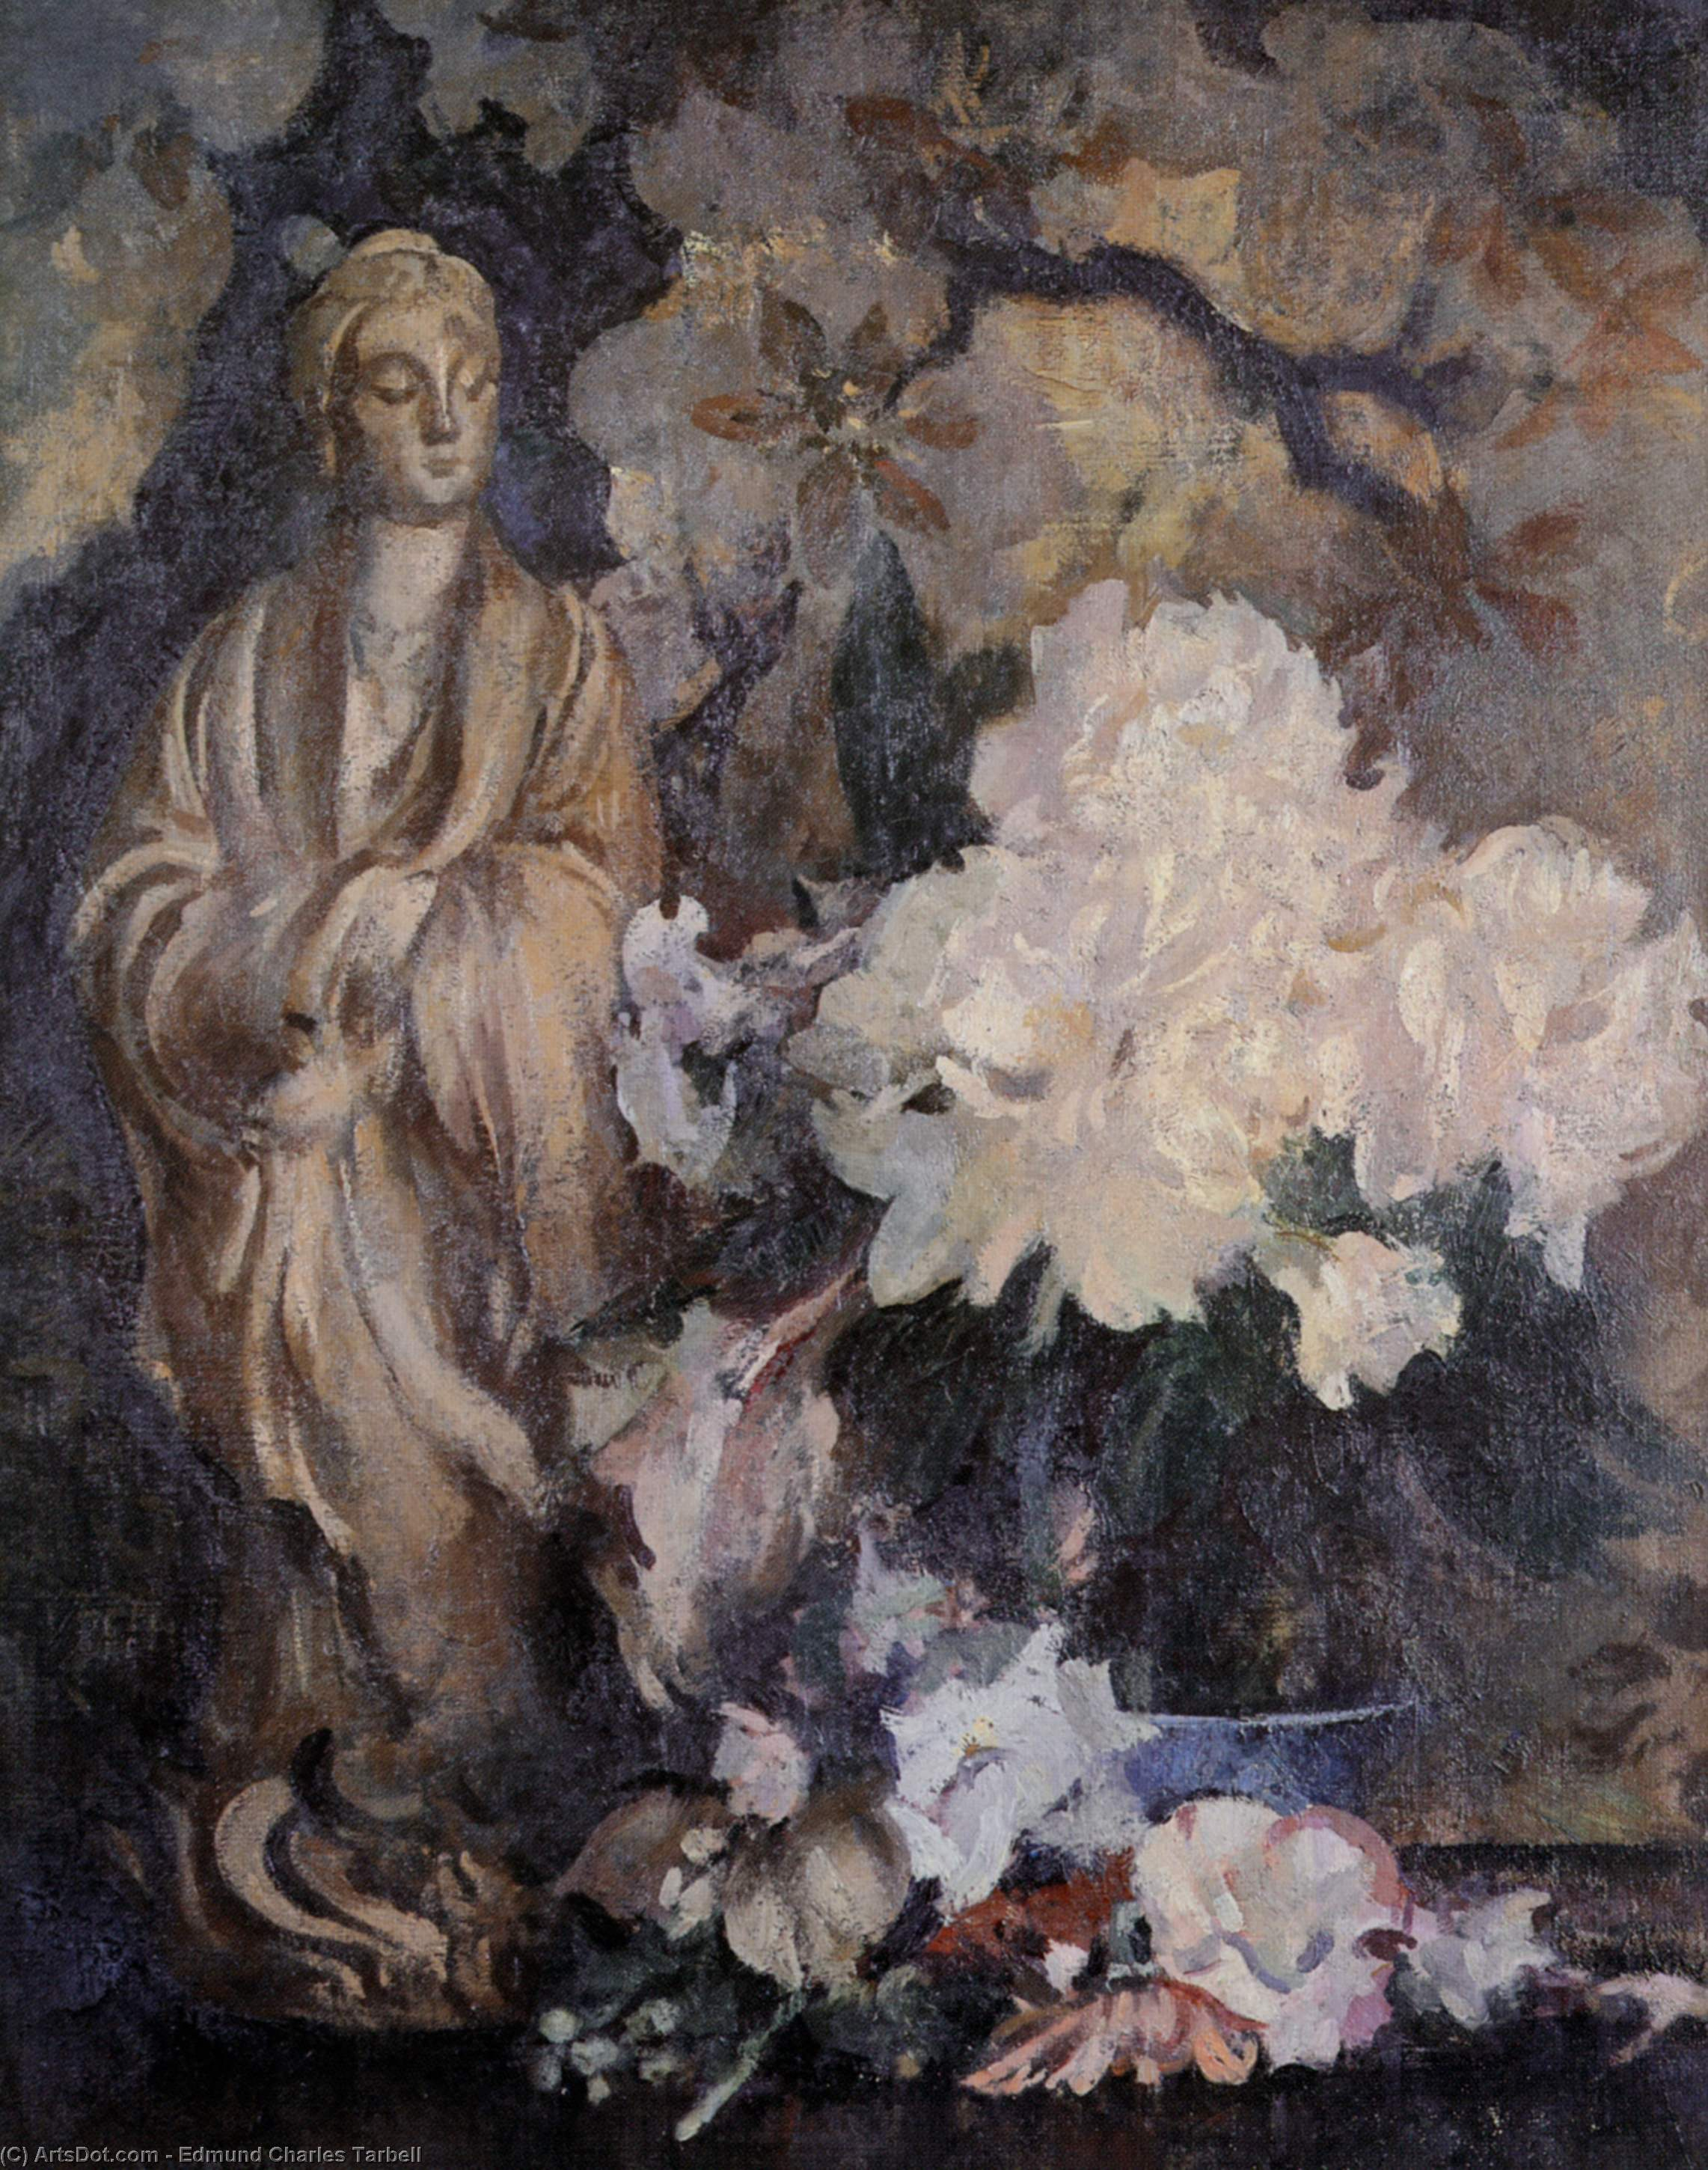 Still Life with Oriental Statue, Oil On Canvas by Edmund Charles Tarbell (1862-1938, United States)